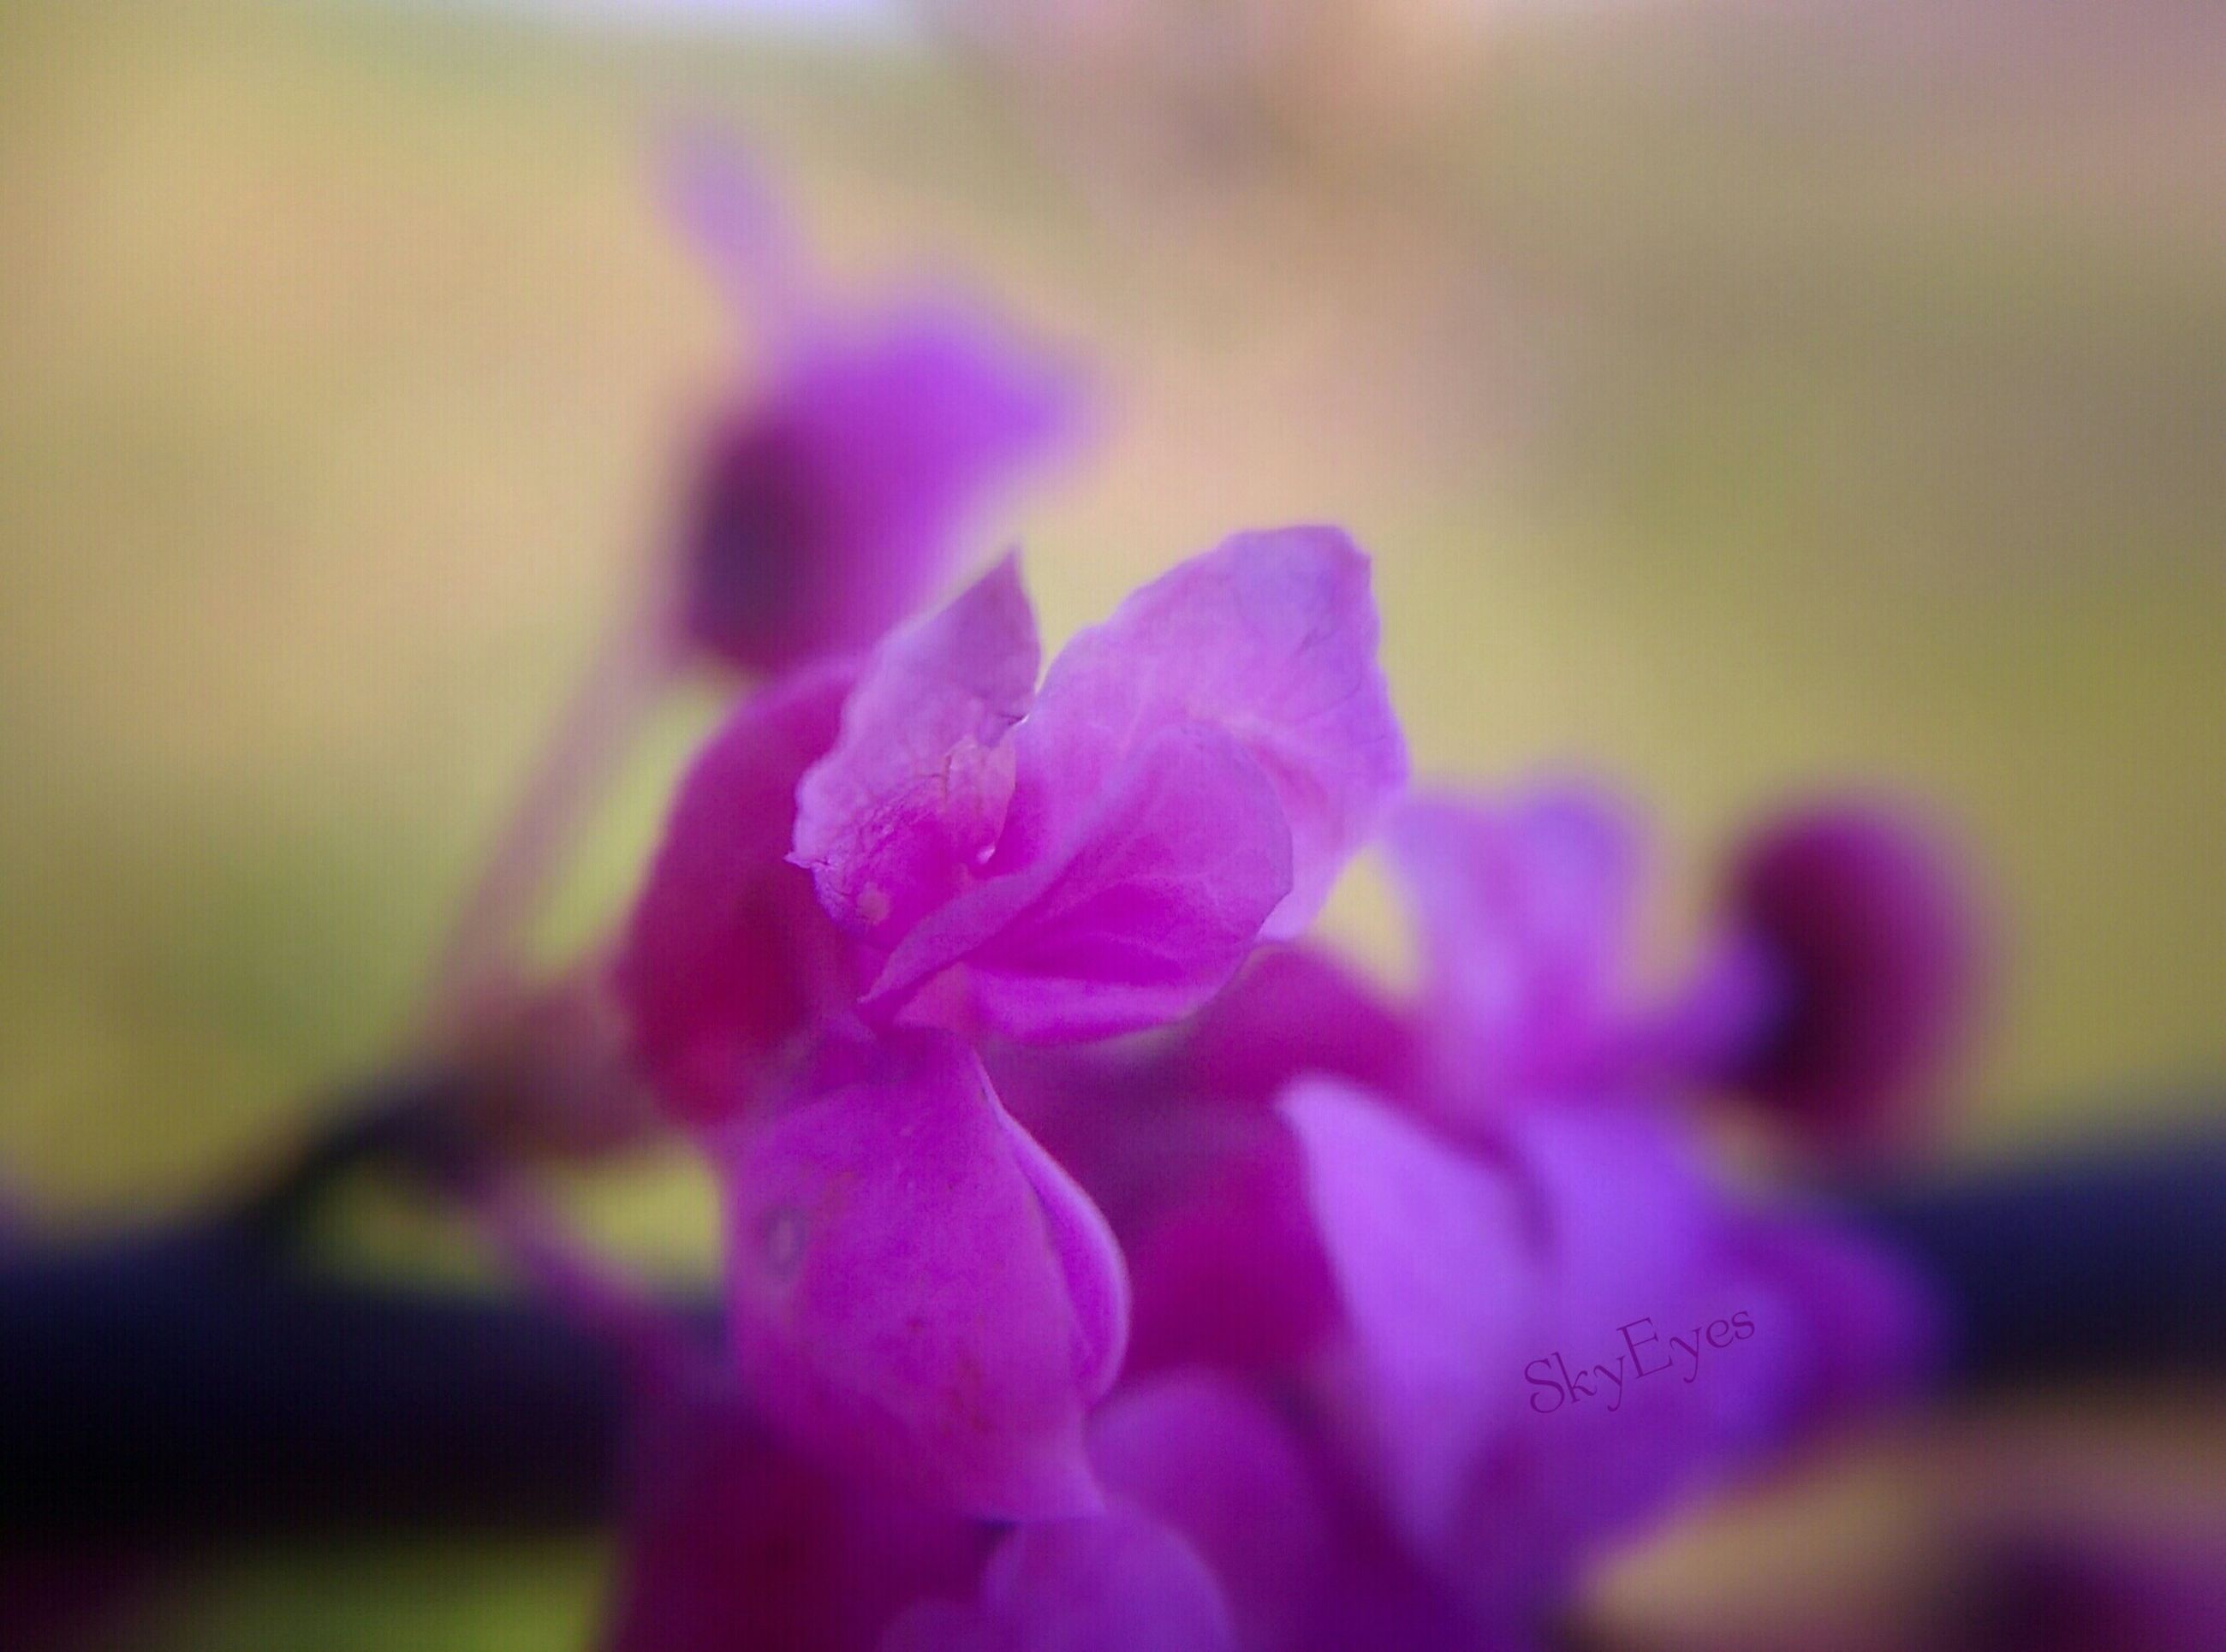 flower, focus on foreground, selective focus, close-up, petal, fragility, pink color, freshness, flower head, growth, beauty in nature, purple, nature, blooming, day, outdoors, plant, park - man made space, no people, pink